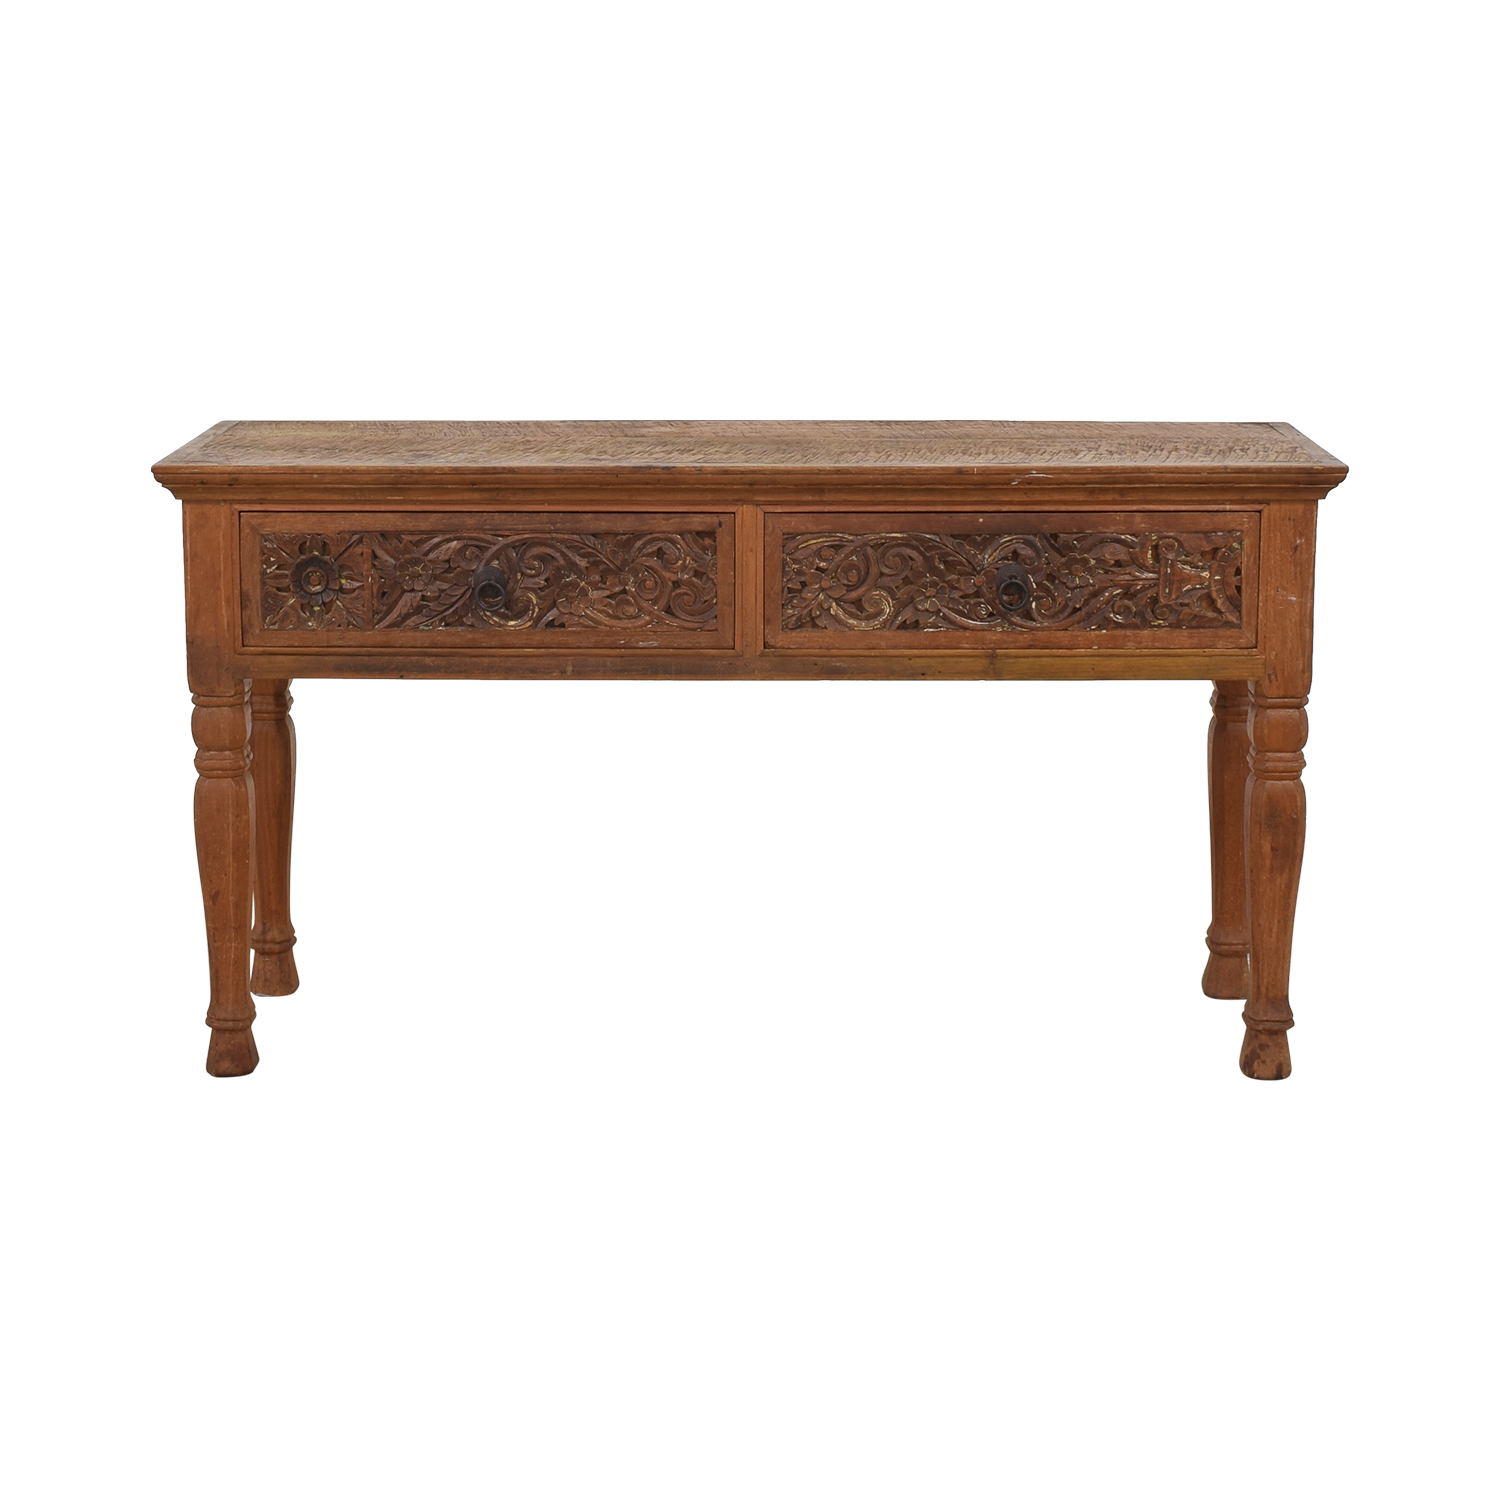 ABC Carpet & Home ABC Carpet & Home Carved Indonesian Style Console Table